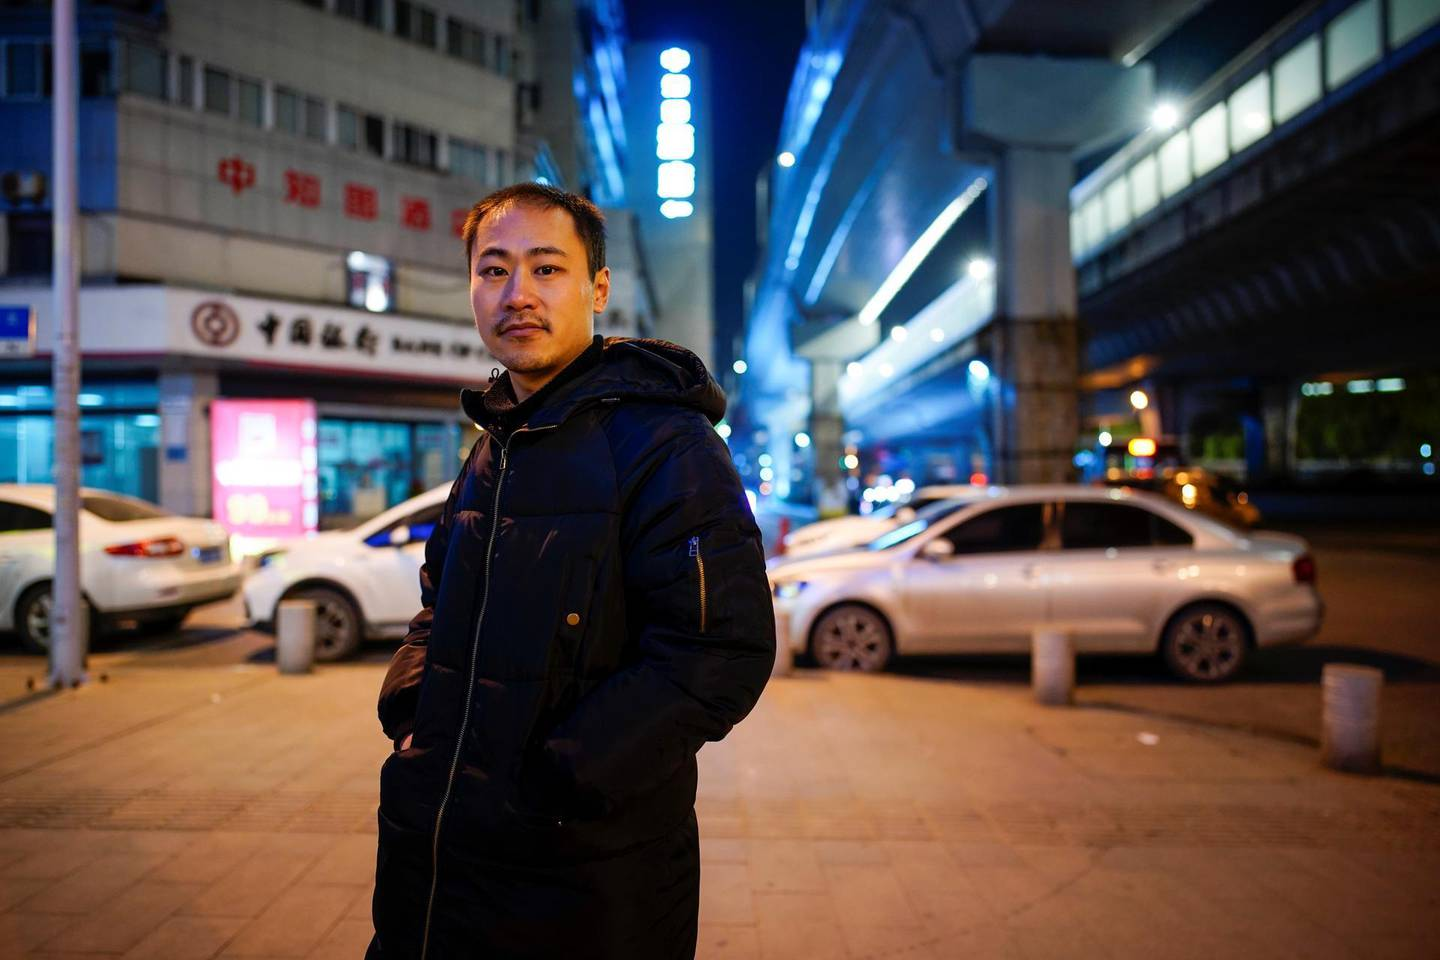 """An Junming poses for a picture on a street, almost a year after the global outbreak of the coronavirus disease (COVID-19) in Wuhan, Hubei province, China December 15, 2020. Junming who worked as a volunteer during the city's lockdown delivering food to people said: """"At that time, I could only eat one meal a day, because there was indeed a lot of work to do, but there were very few people doing it, so I was very anxious."""" Picture taken December 15, 2020. REUTERS/Aly Song"""